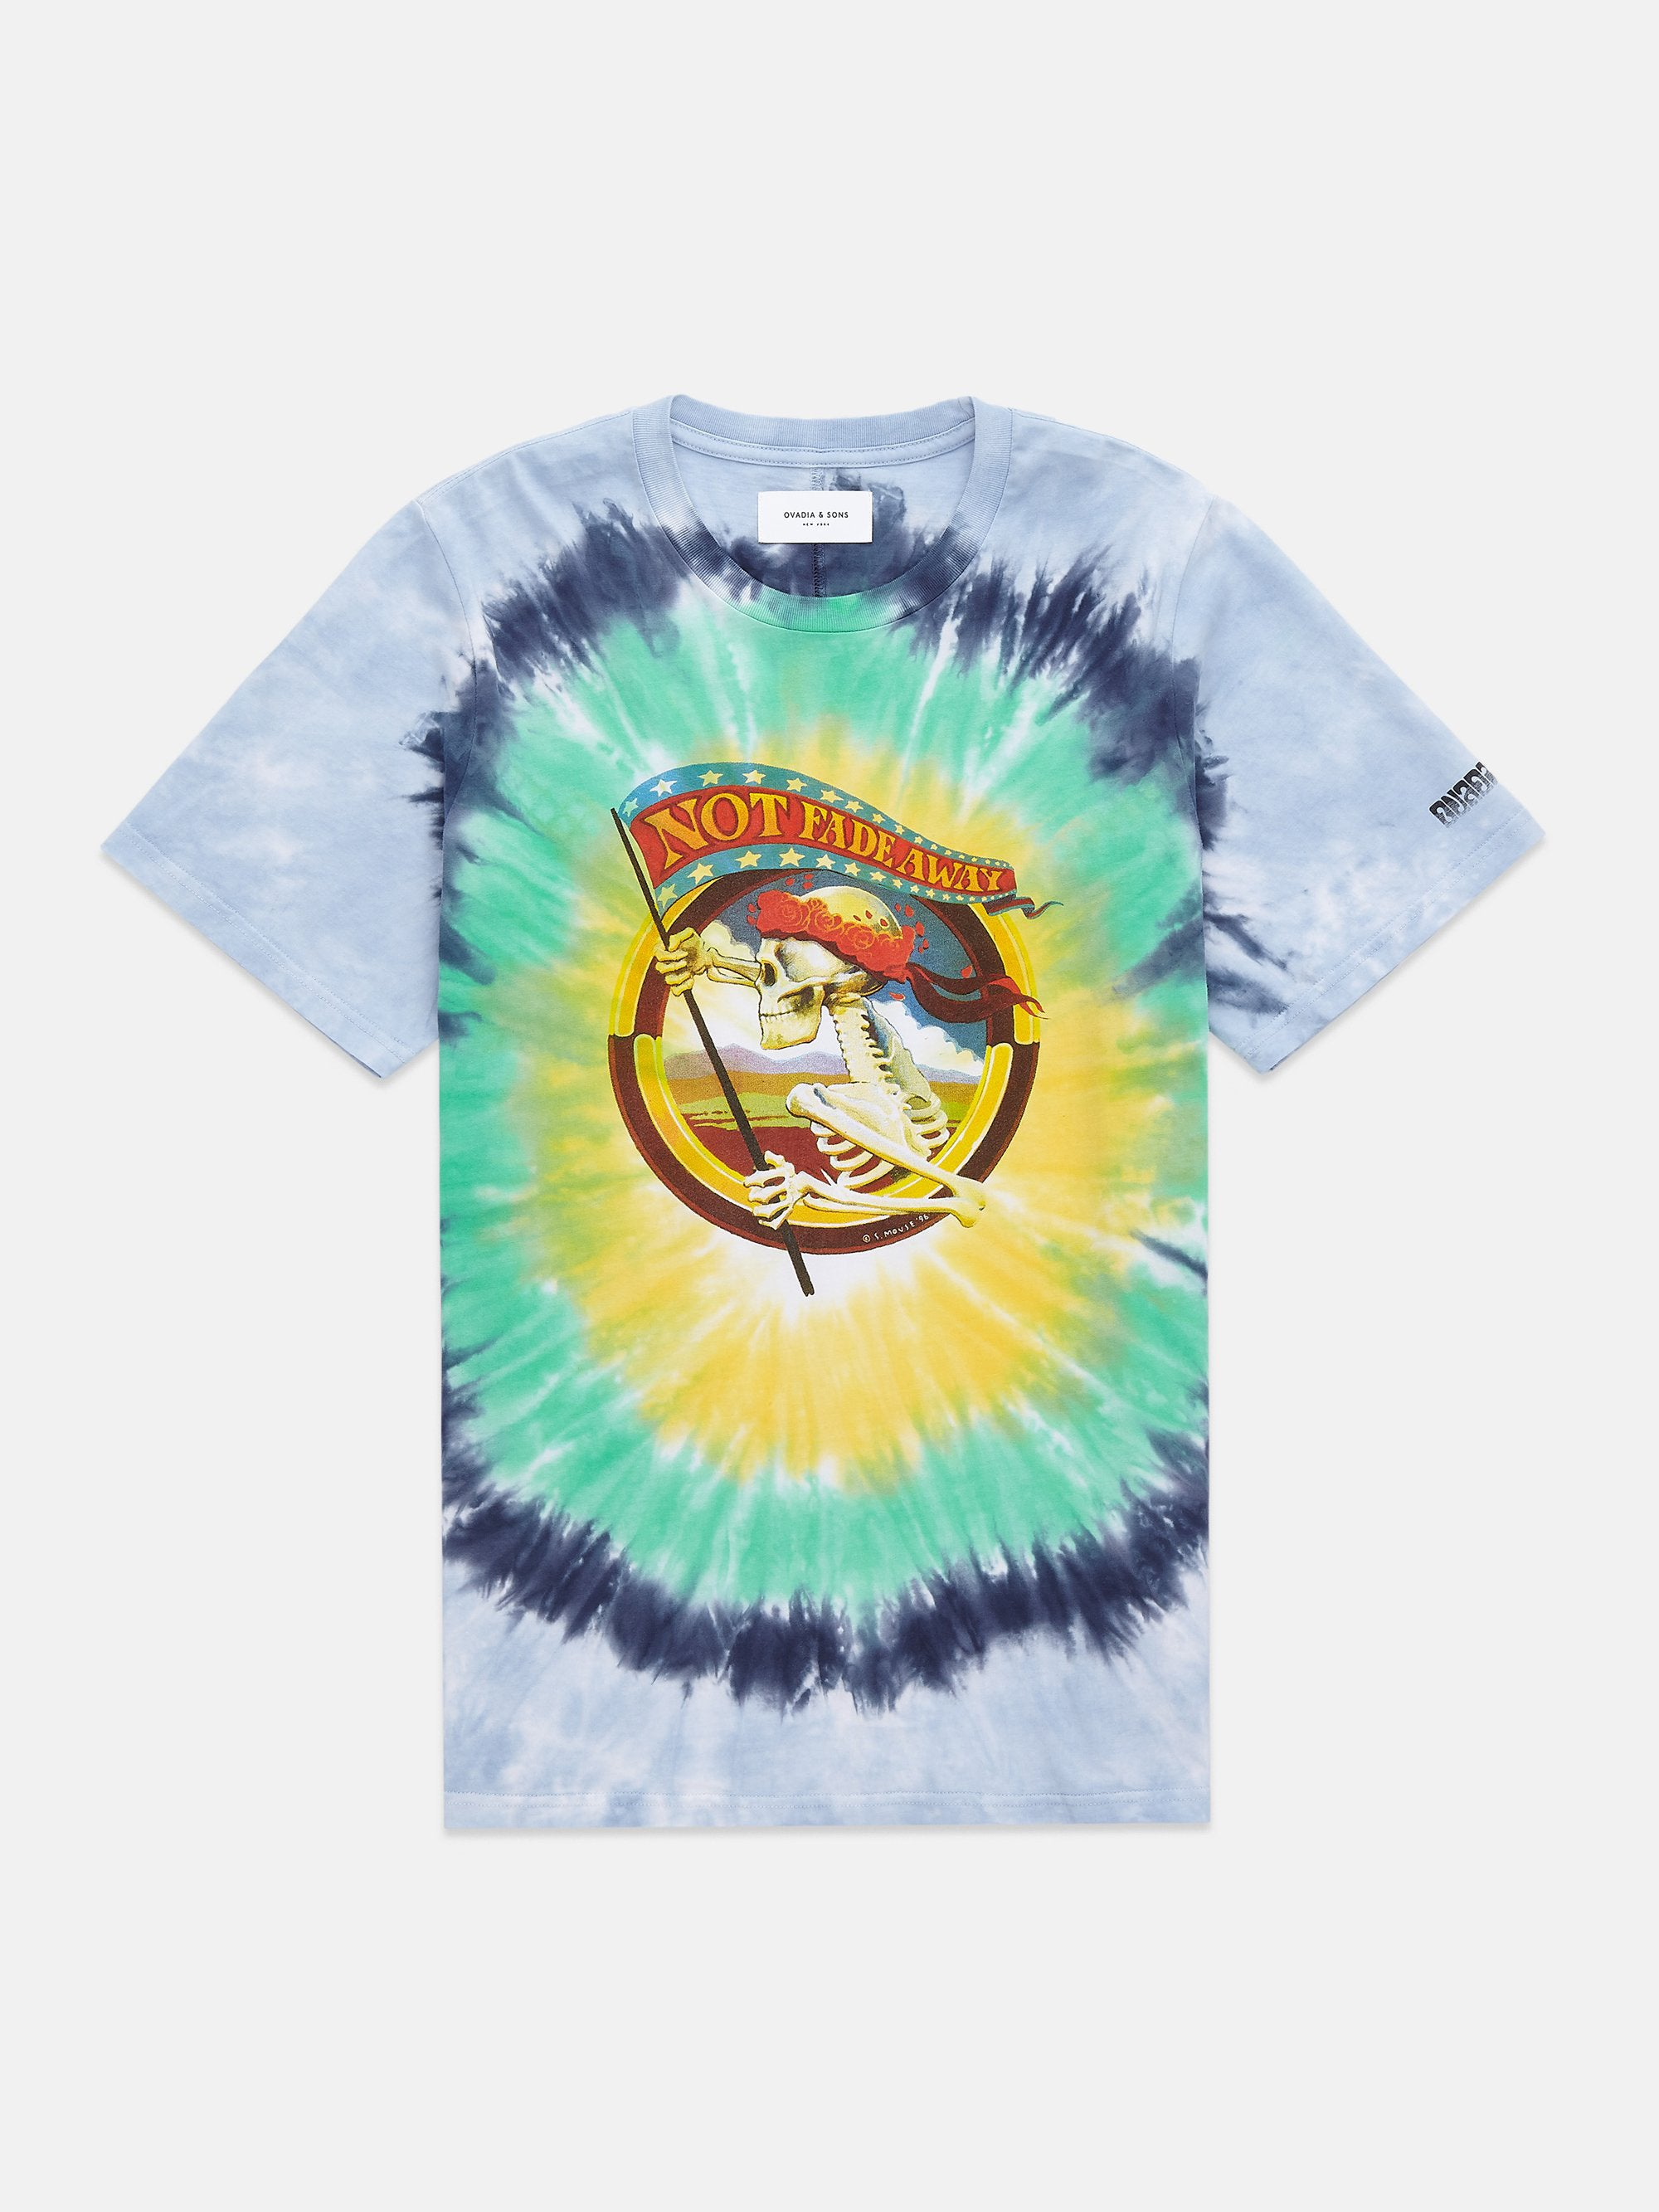 Stanley Mouse T Shirts